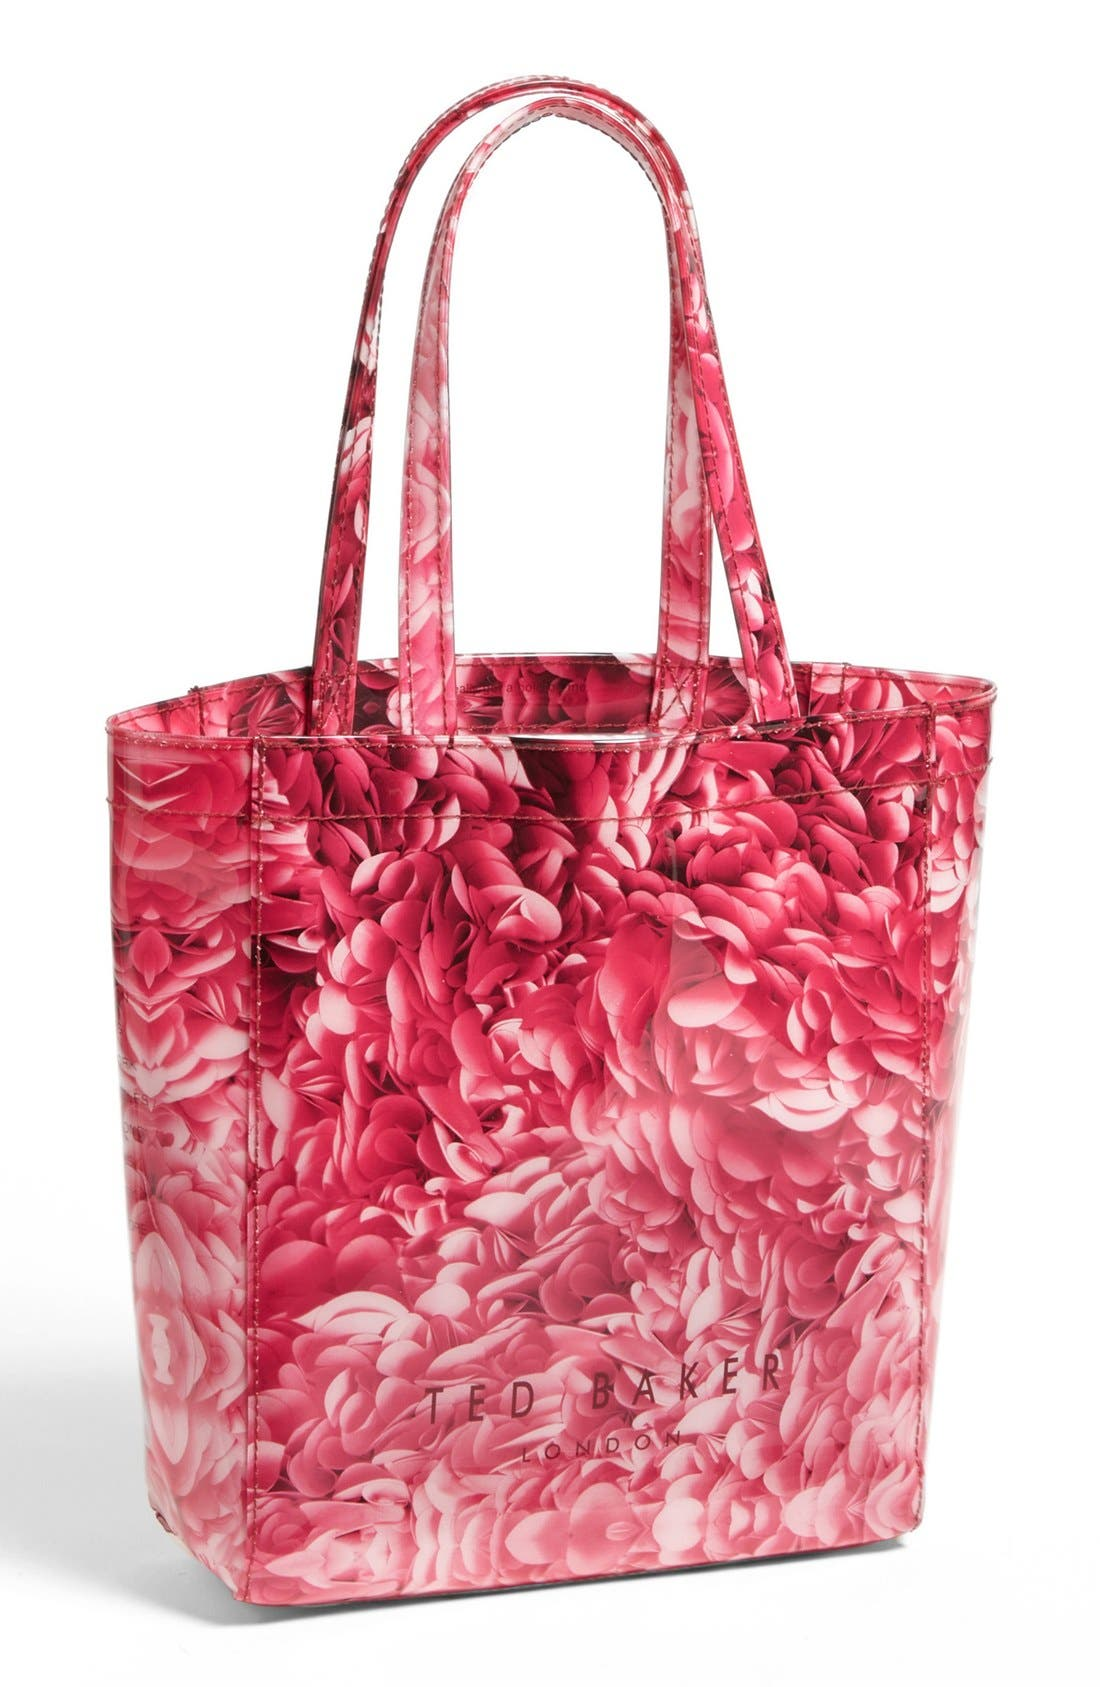 Main Image - Ted Baker London 'Holiday - Rosette Ikon' Tote